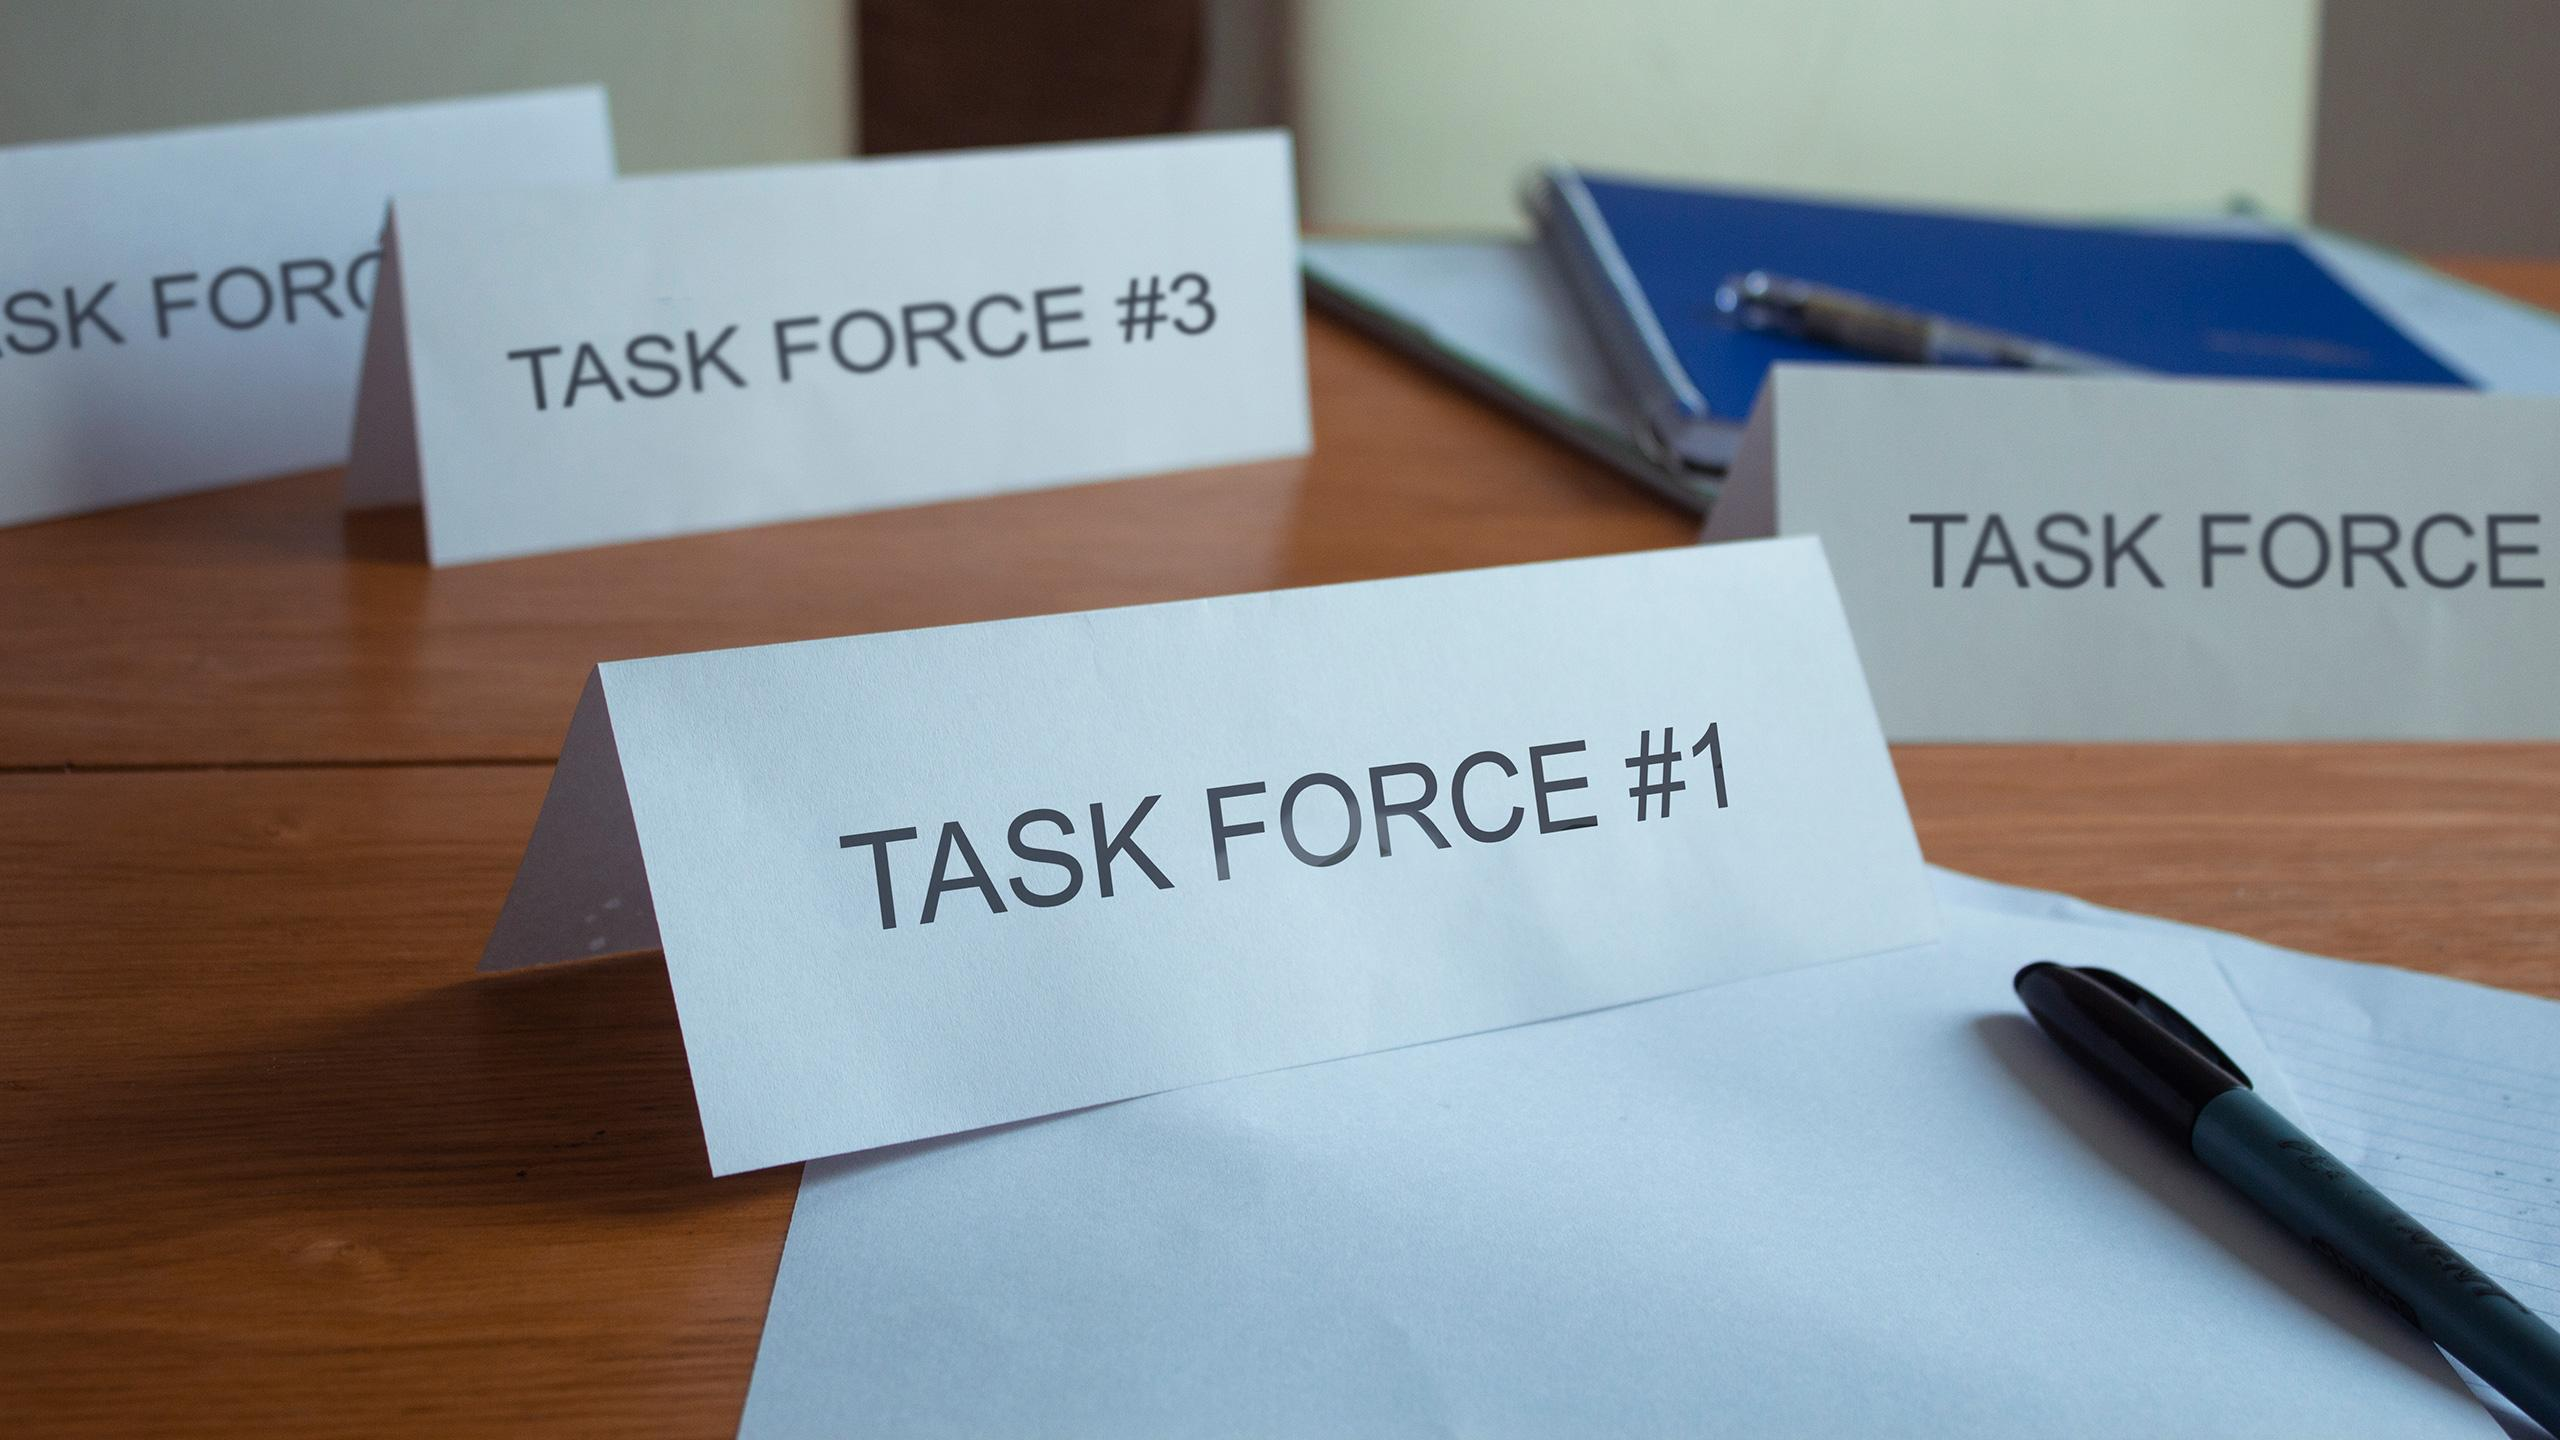 Photo of with 4 name cards that say Task Force #1, Task Force #2, etc. with pens and papers scattered on a desk.